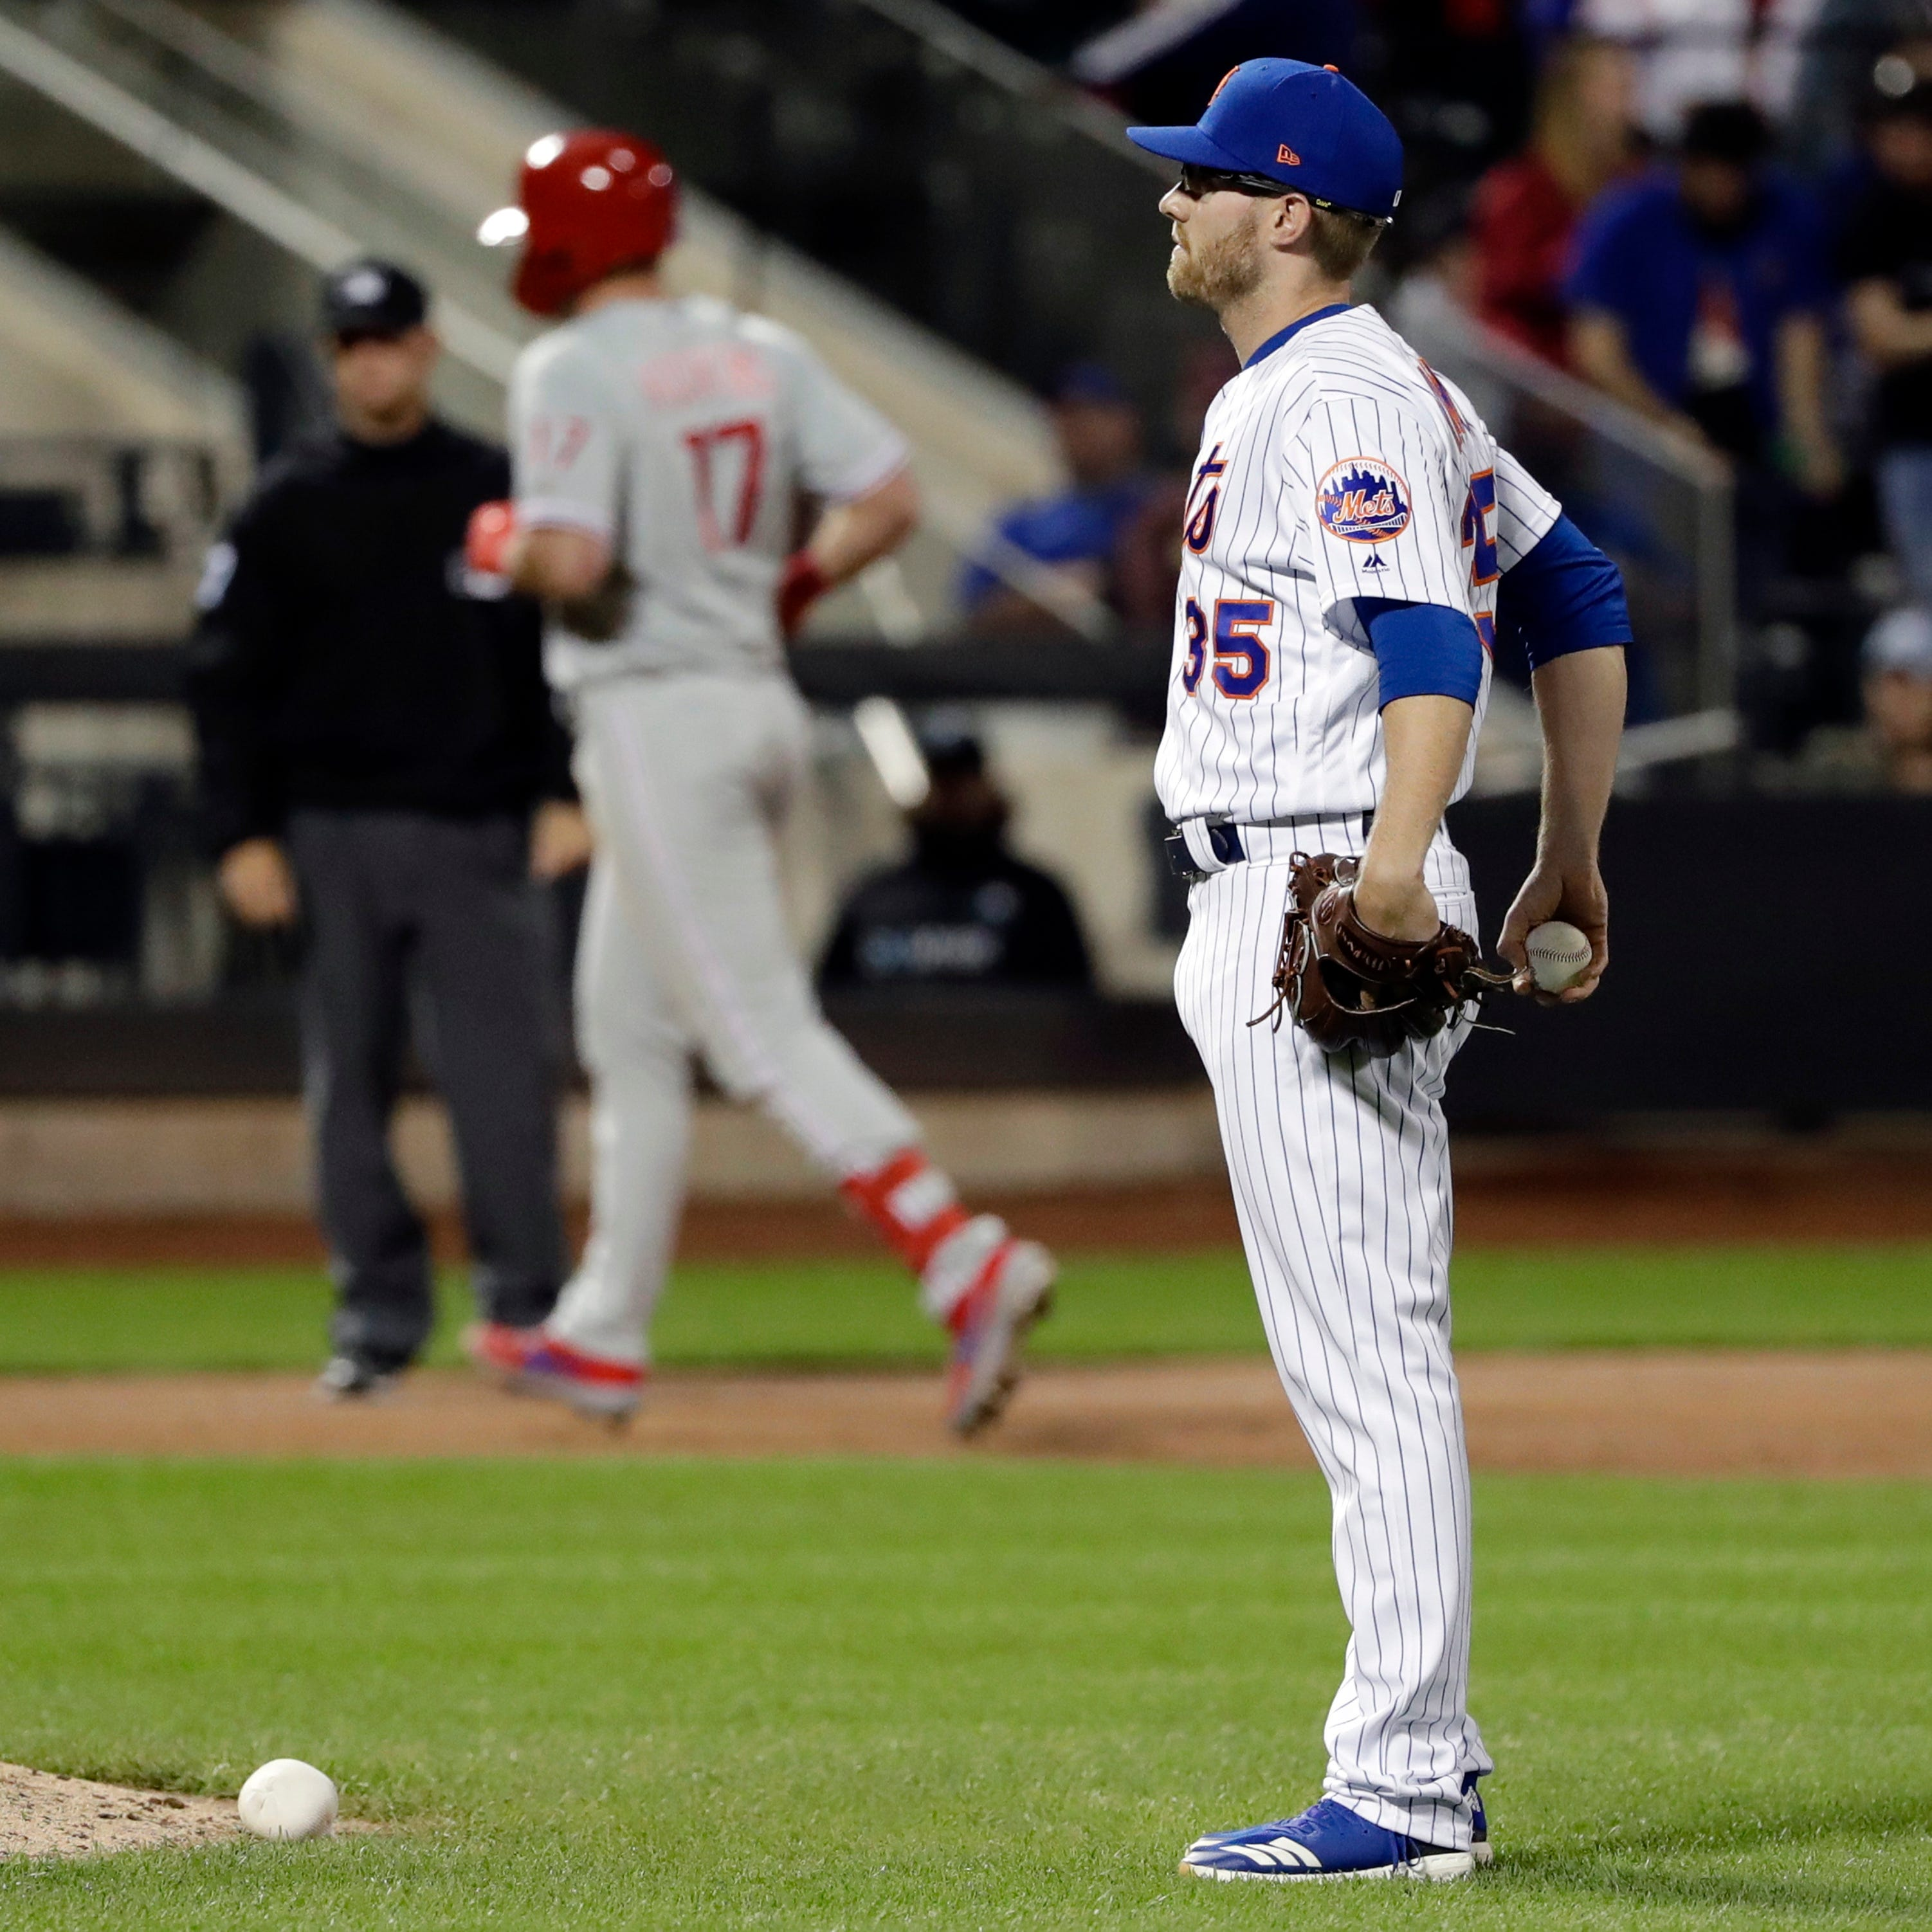 Mets' Jacob Rhame appealing suspension, but still optioned to Class AAA